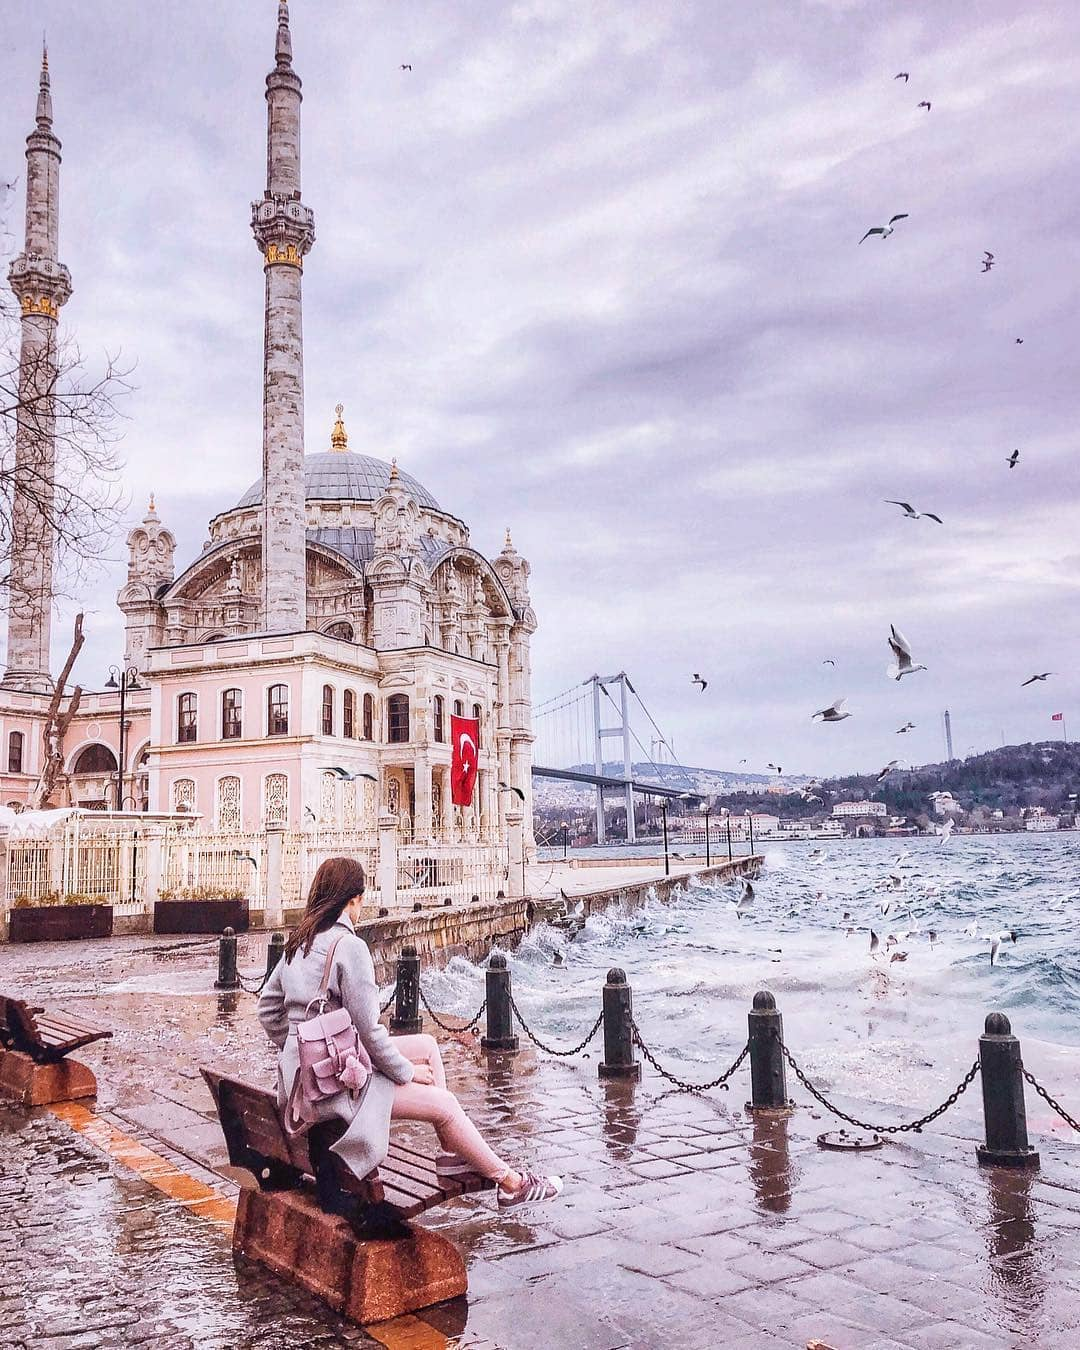 Top 10 Countries That Attract The Most Tourists - Turkey